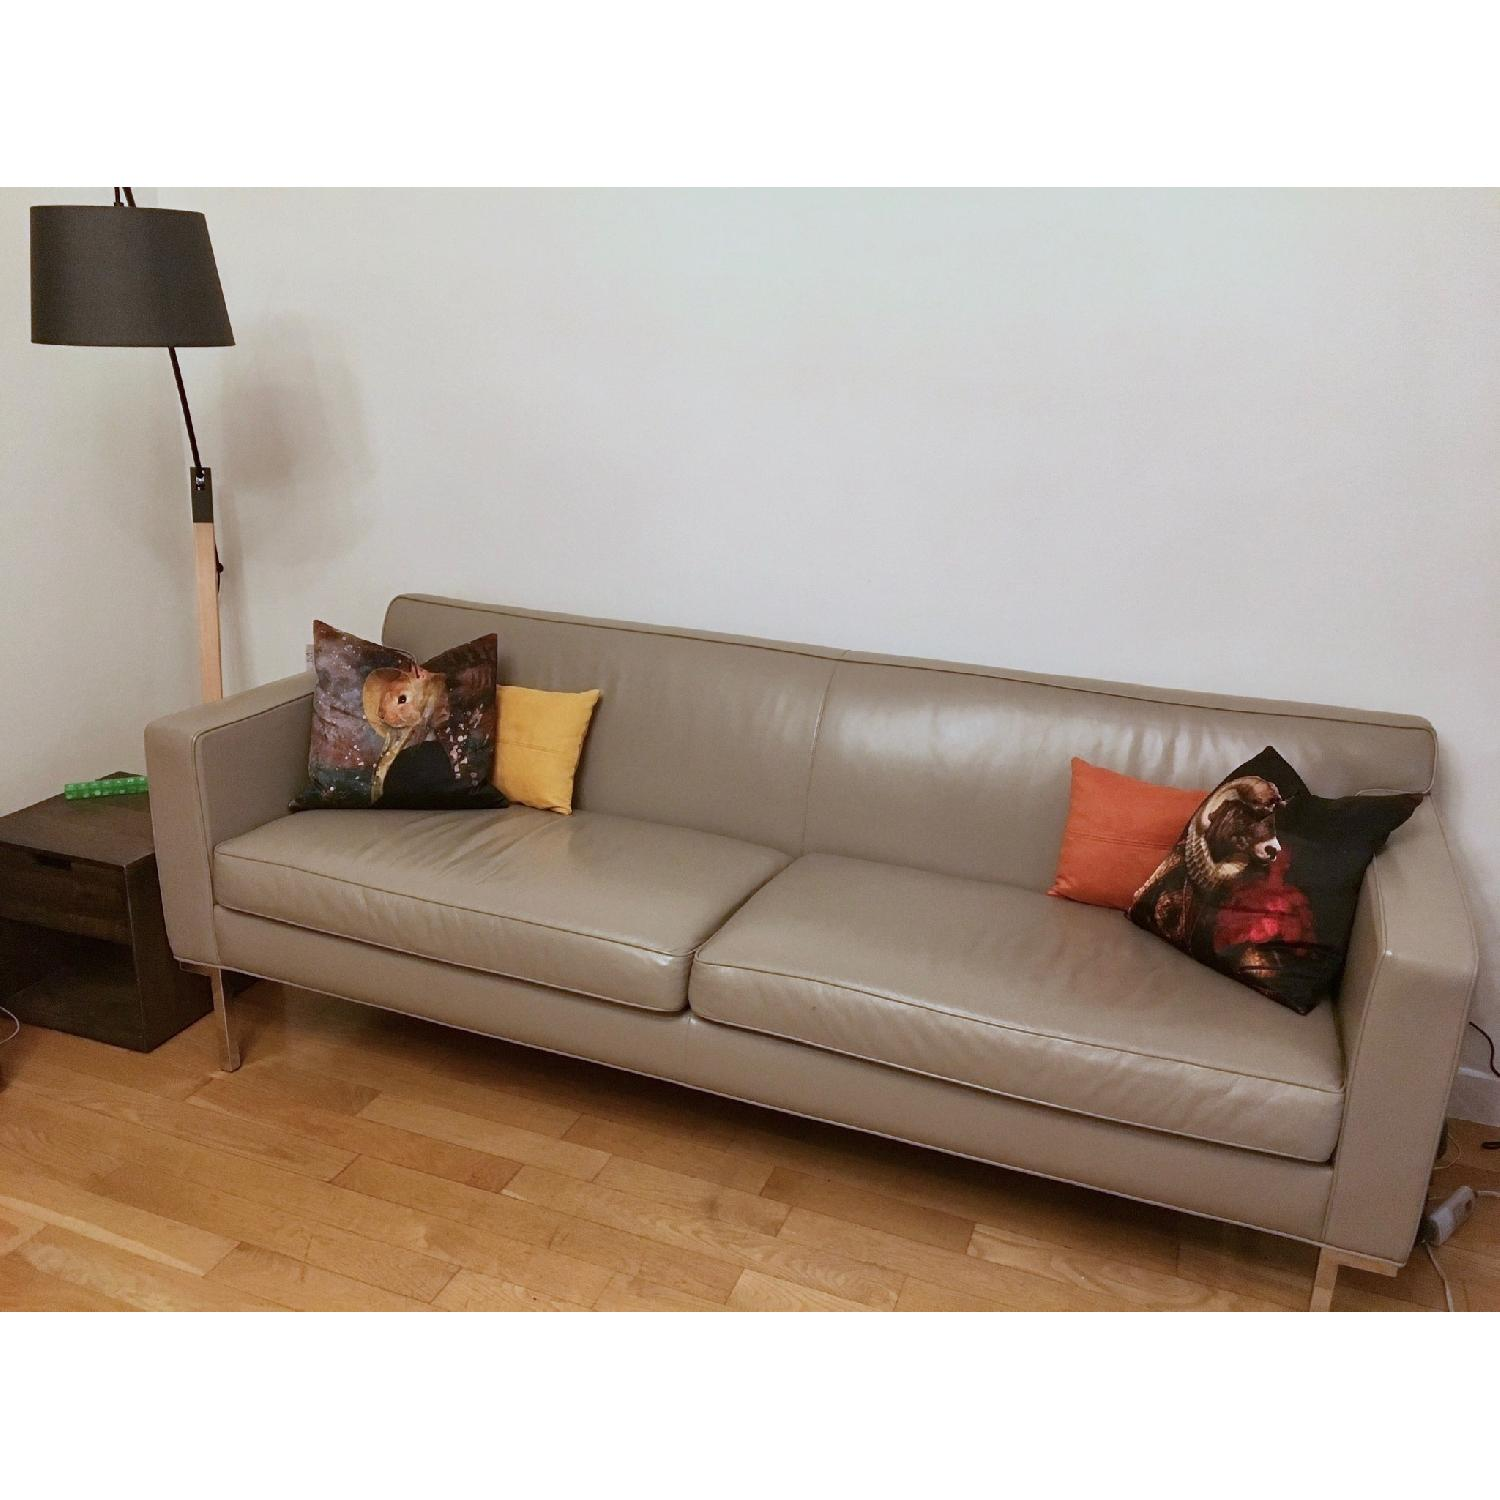 dwr theatre sofa review dark gray living room design within reach in warm grey leather aptdeco 0